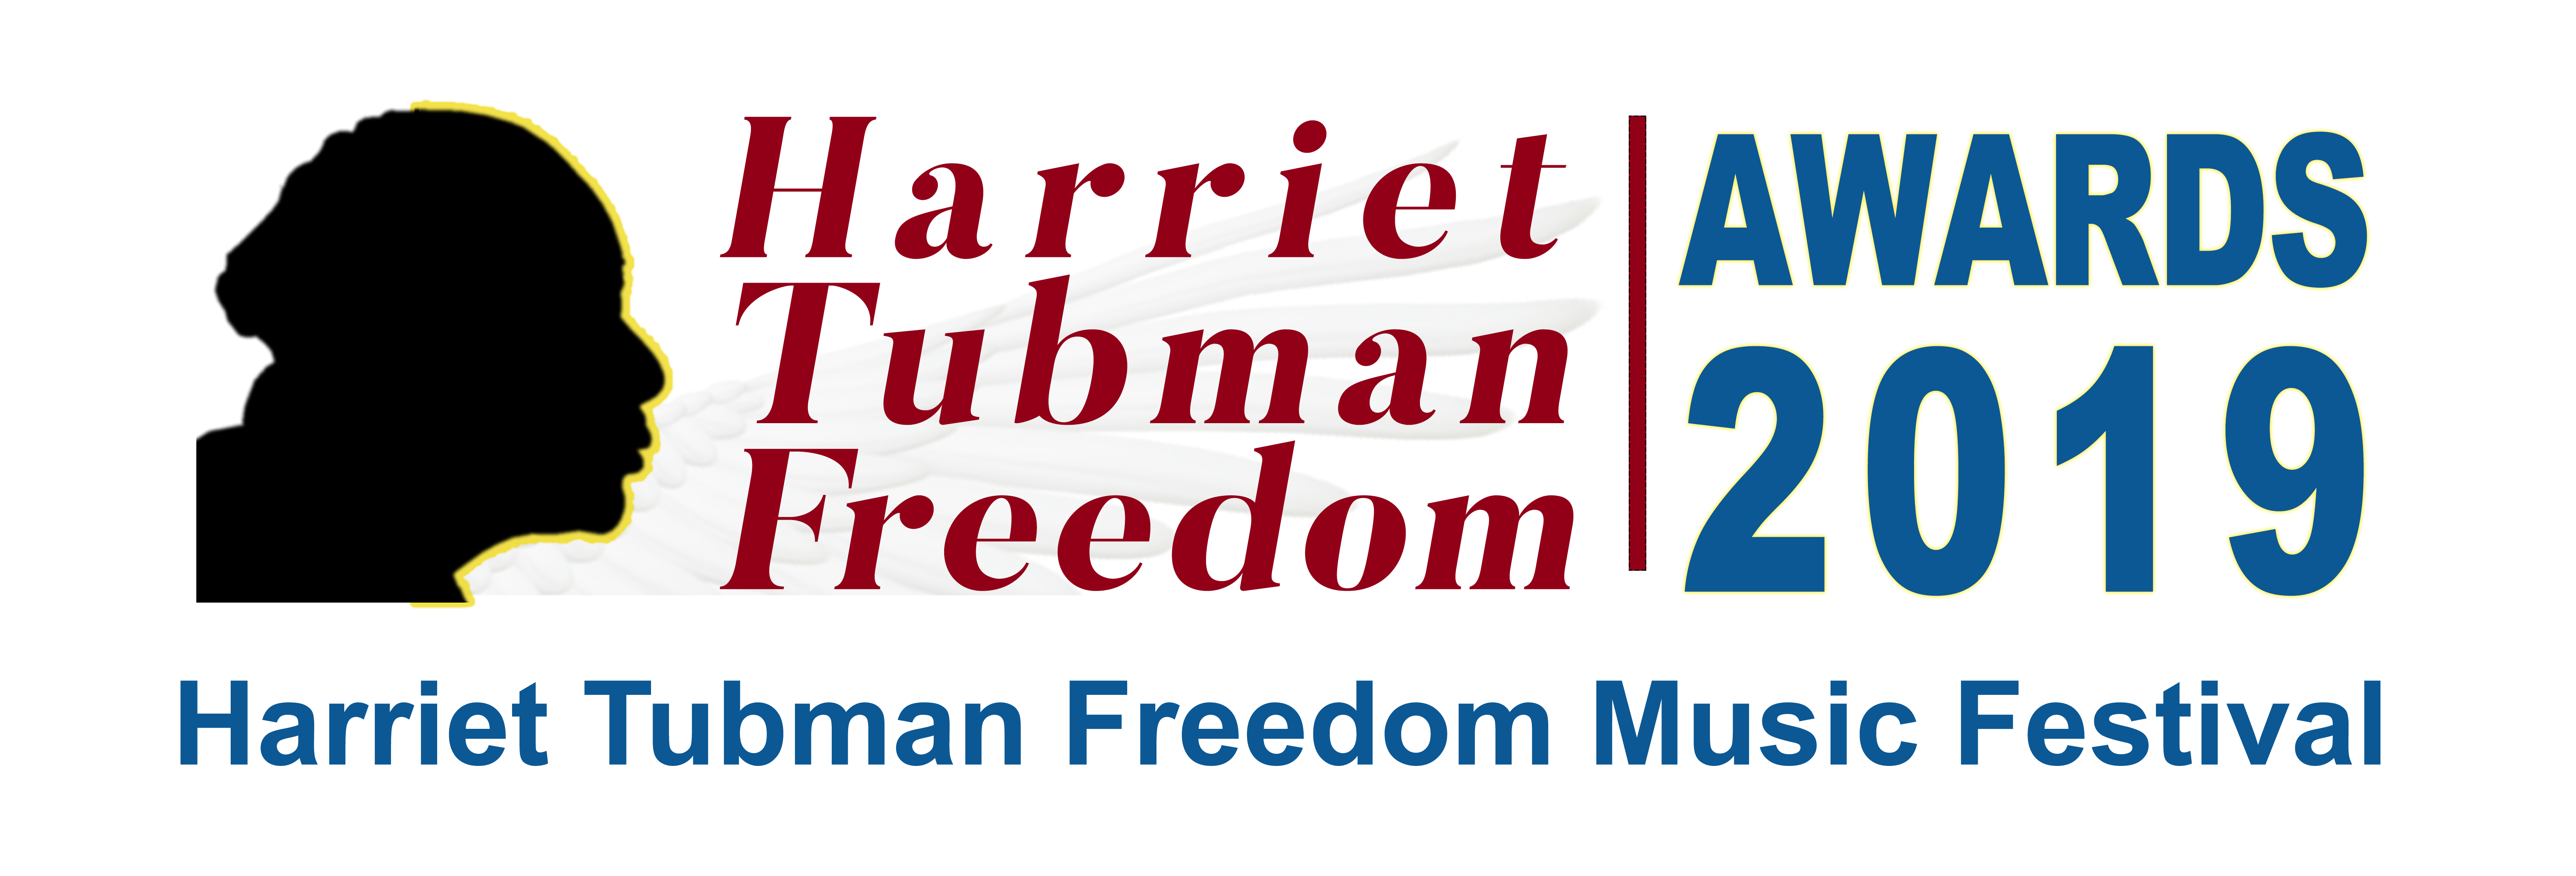 Harriet Tubman Freedom Awards - 2019